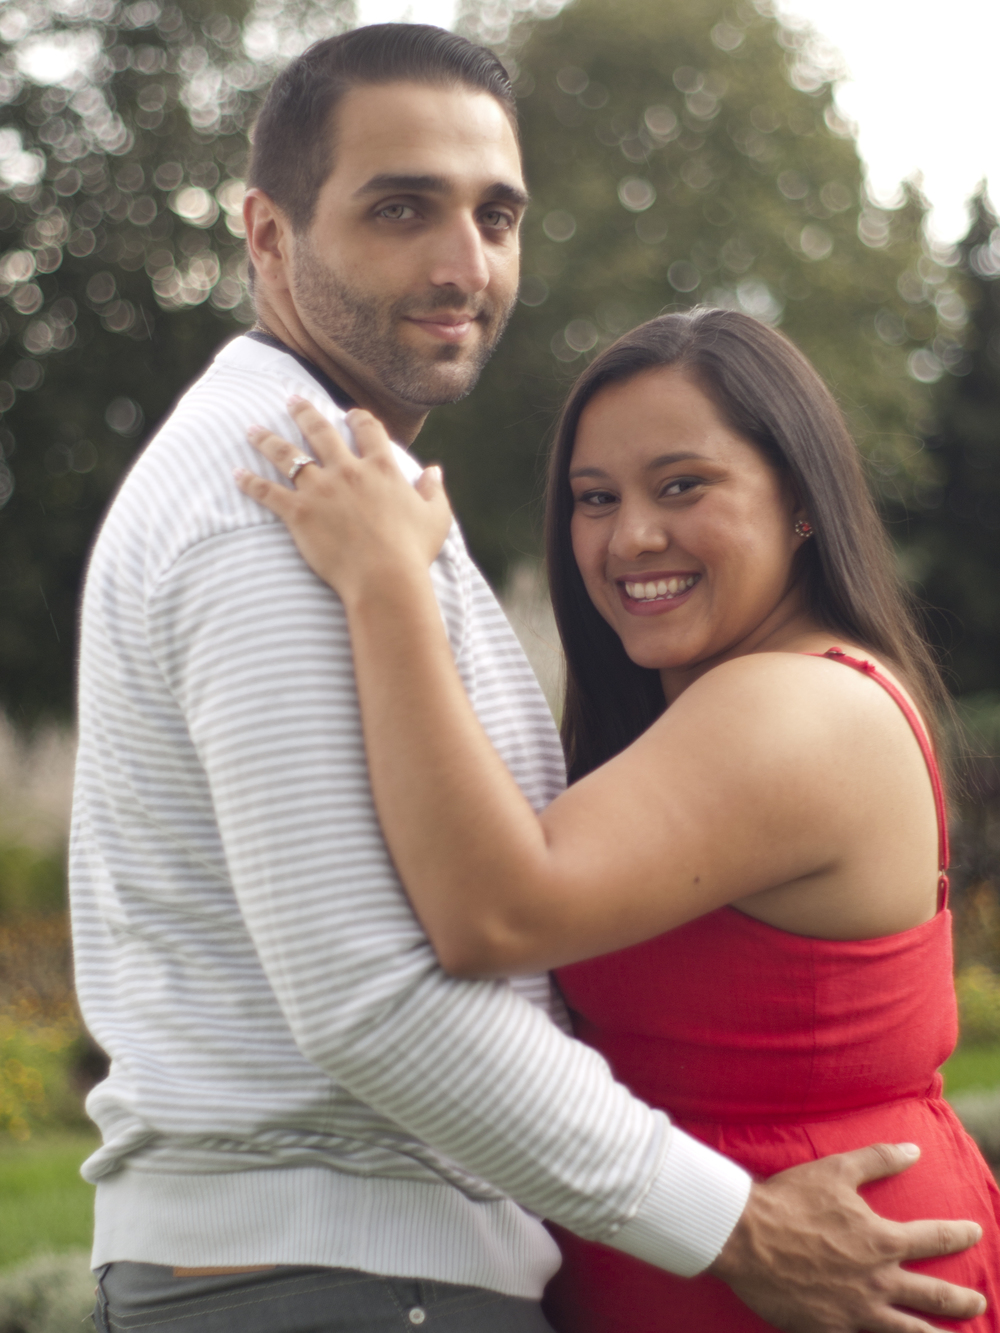 Kevin & Erica